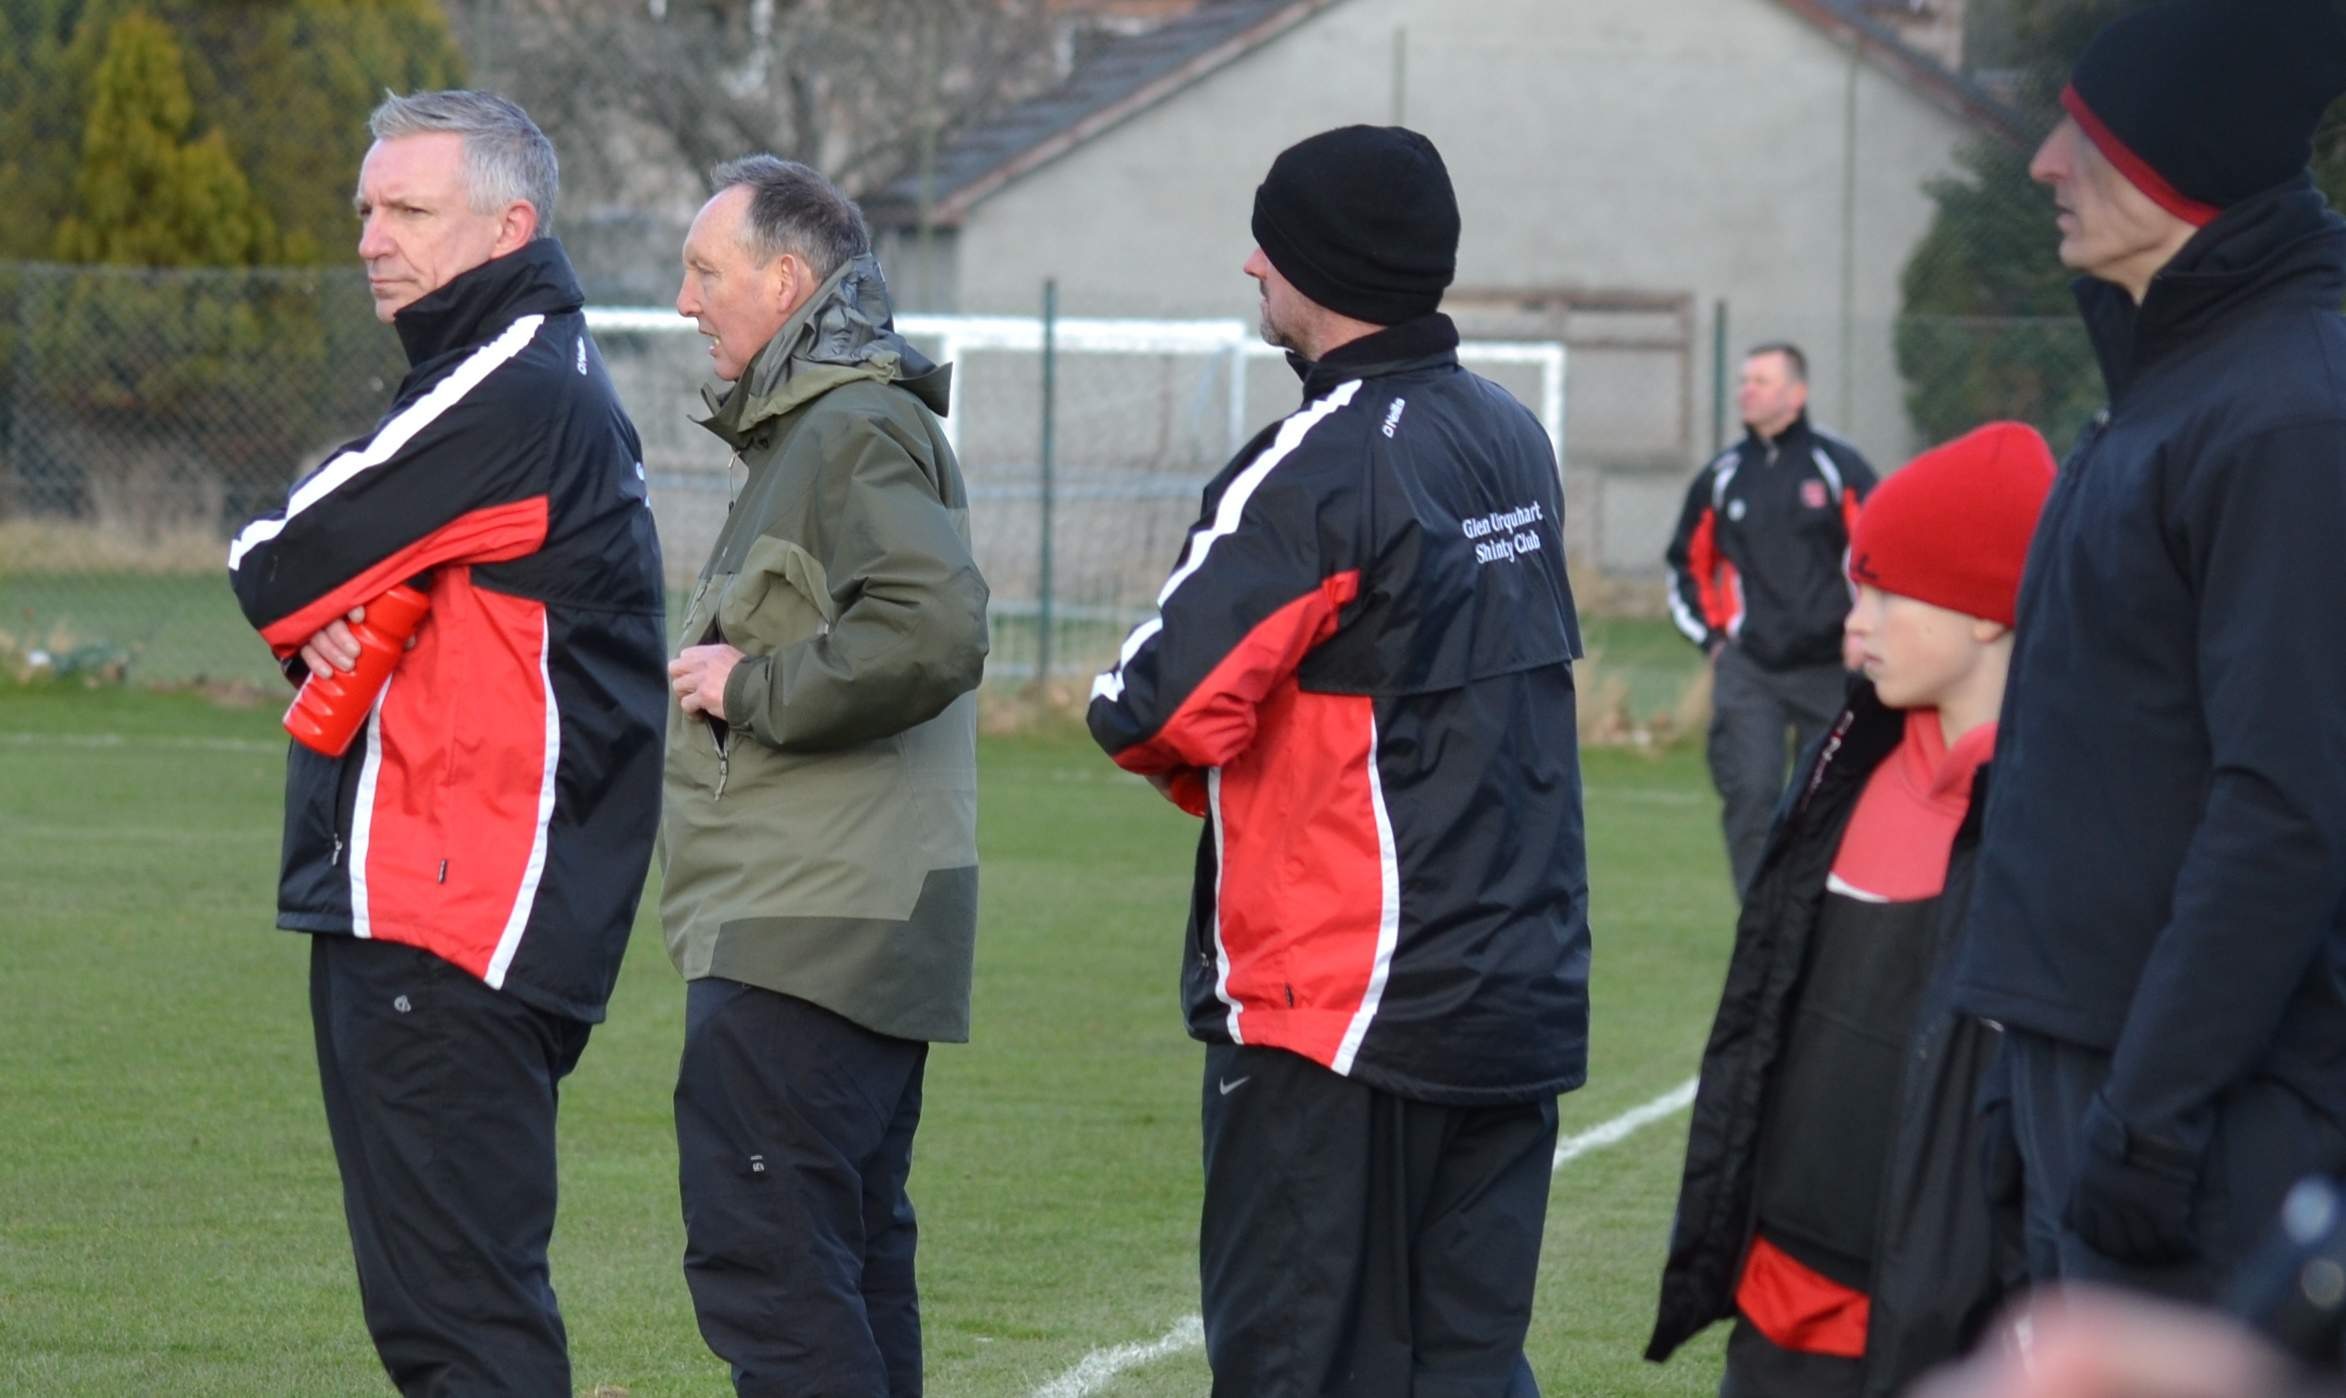 Glenurquhart Managers & Coaches